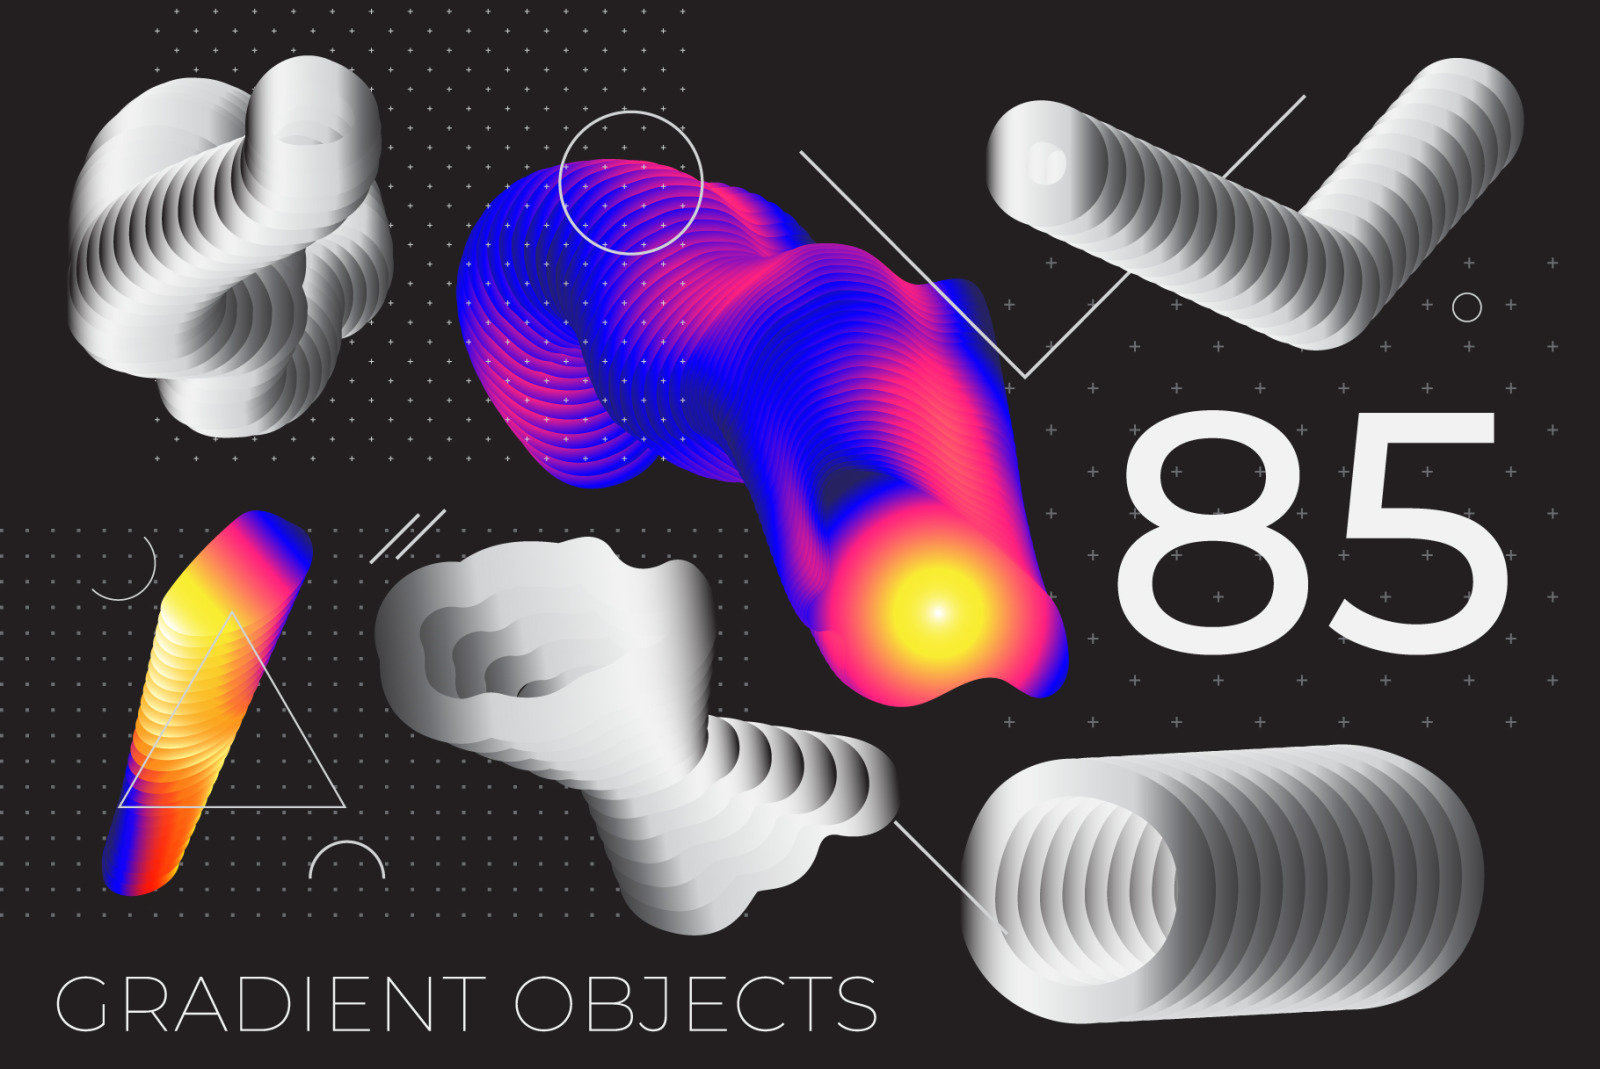 85 Gradient Object Poster Background